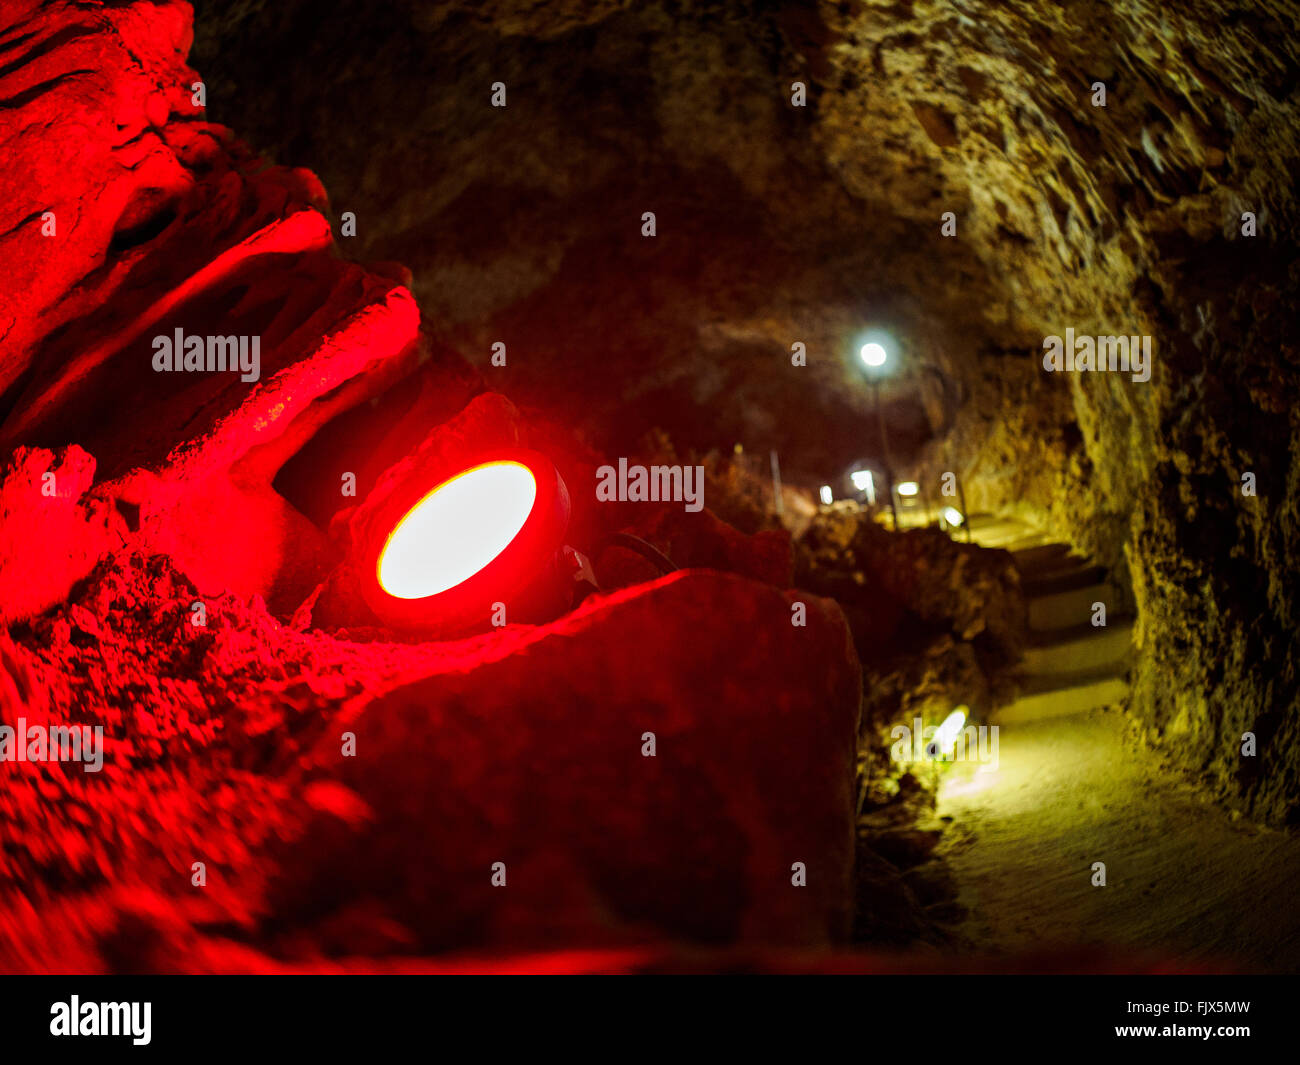 Interior Of Illuminated Cave - Stock Image